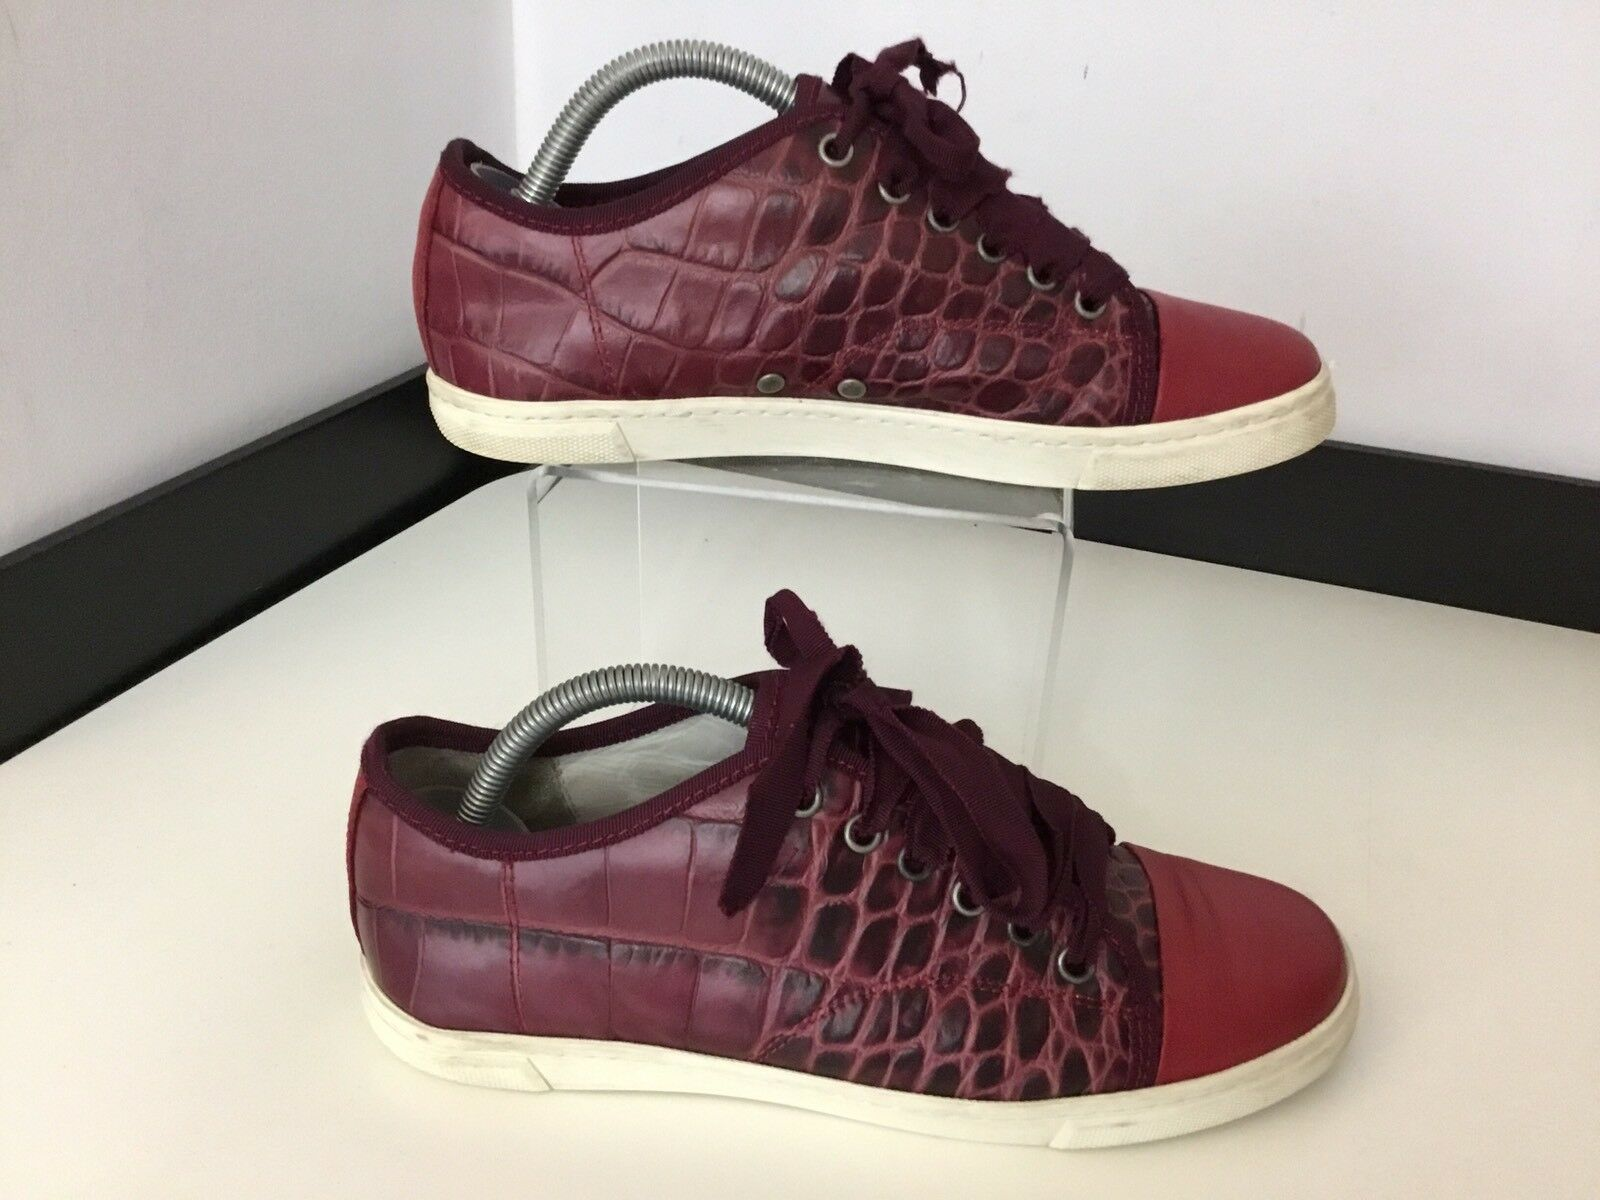 Lanvin Ladies Sneakers, Eu37, Maroon, Red, Alligator Leather, Trainers, Vgc